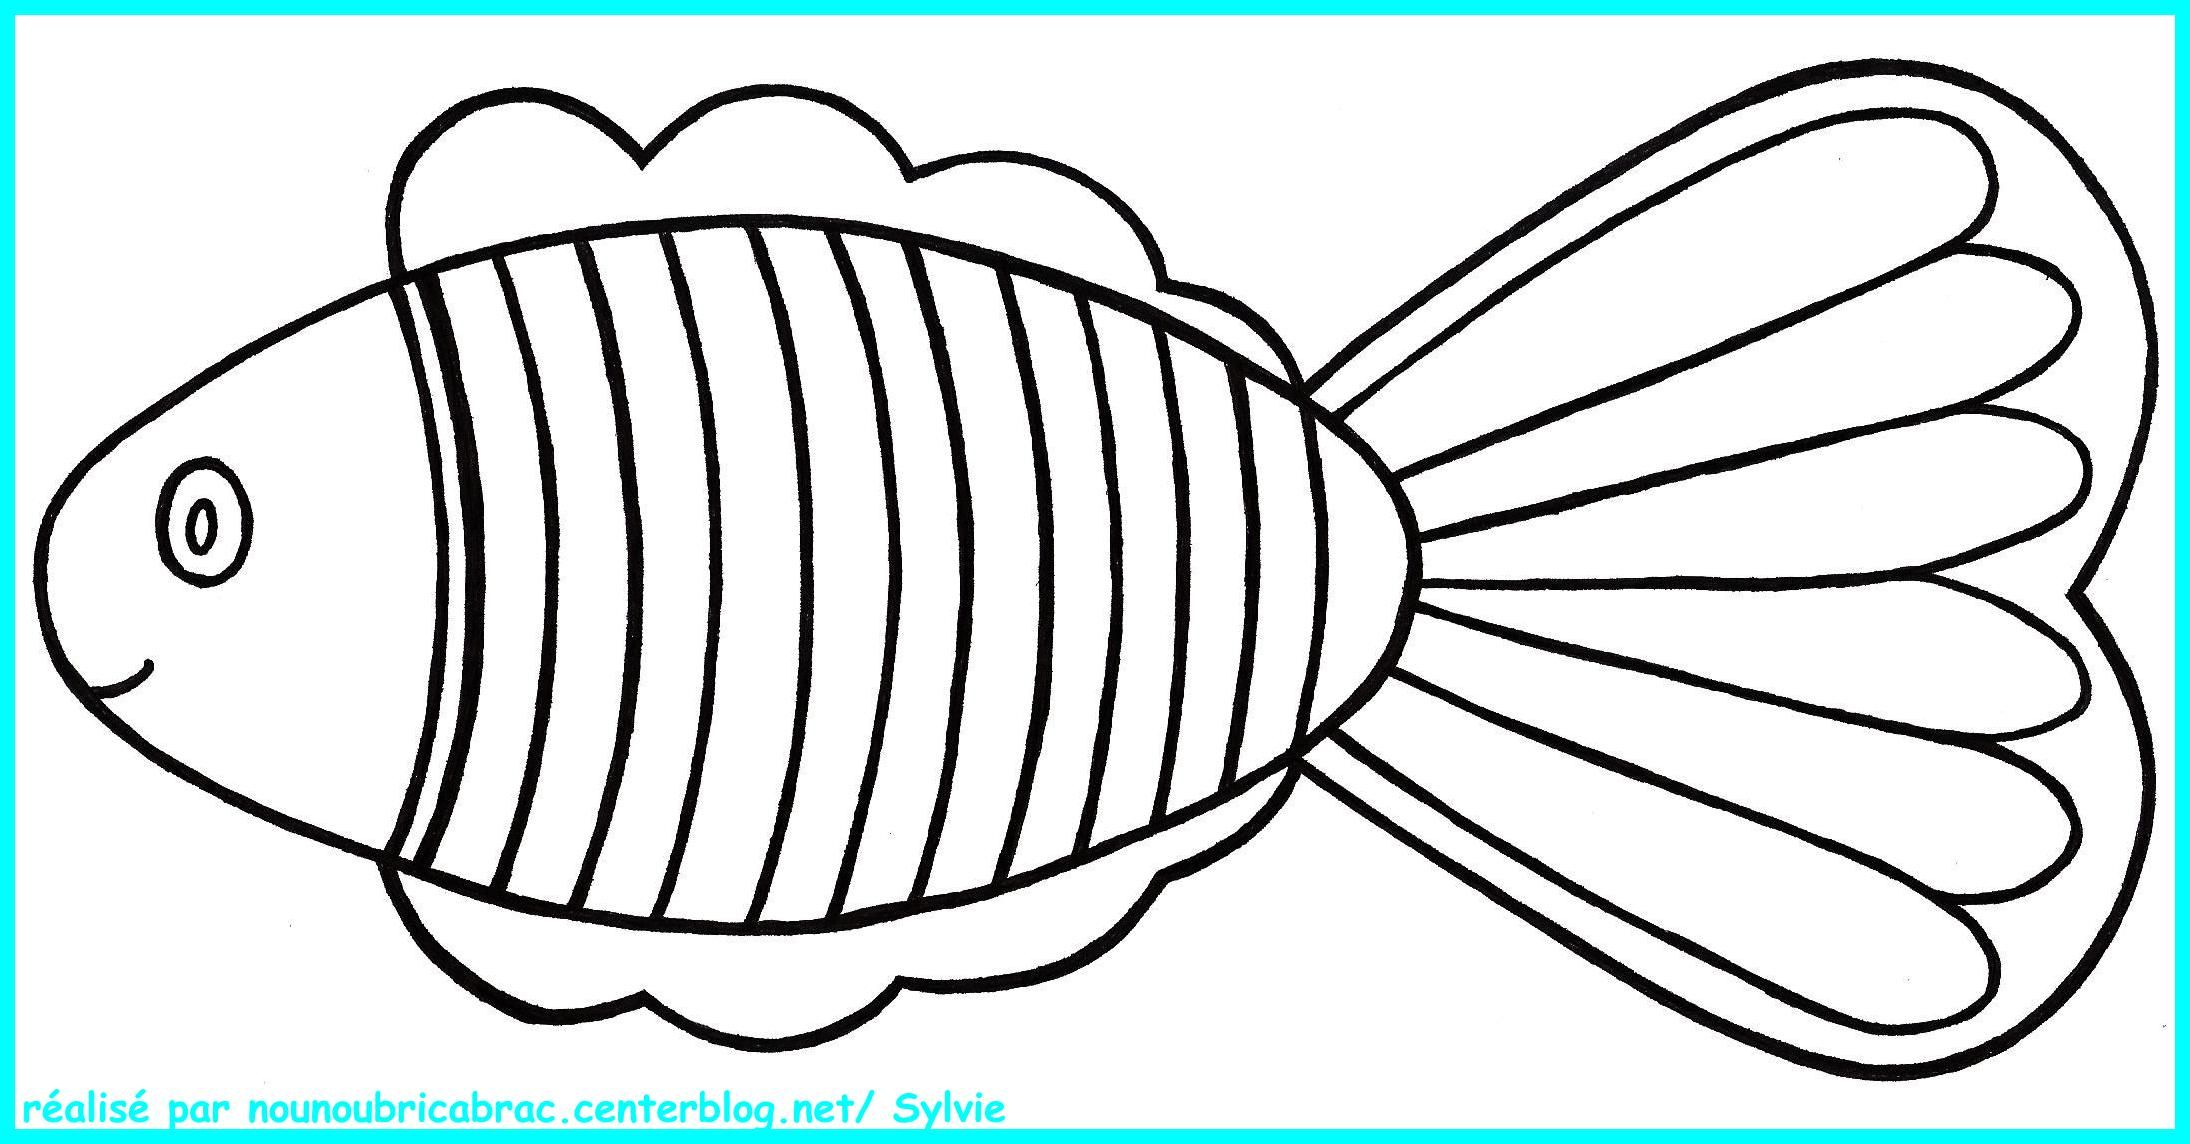 Poisson d'Avril... à colorier